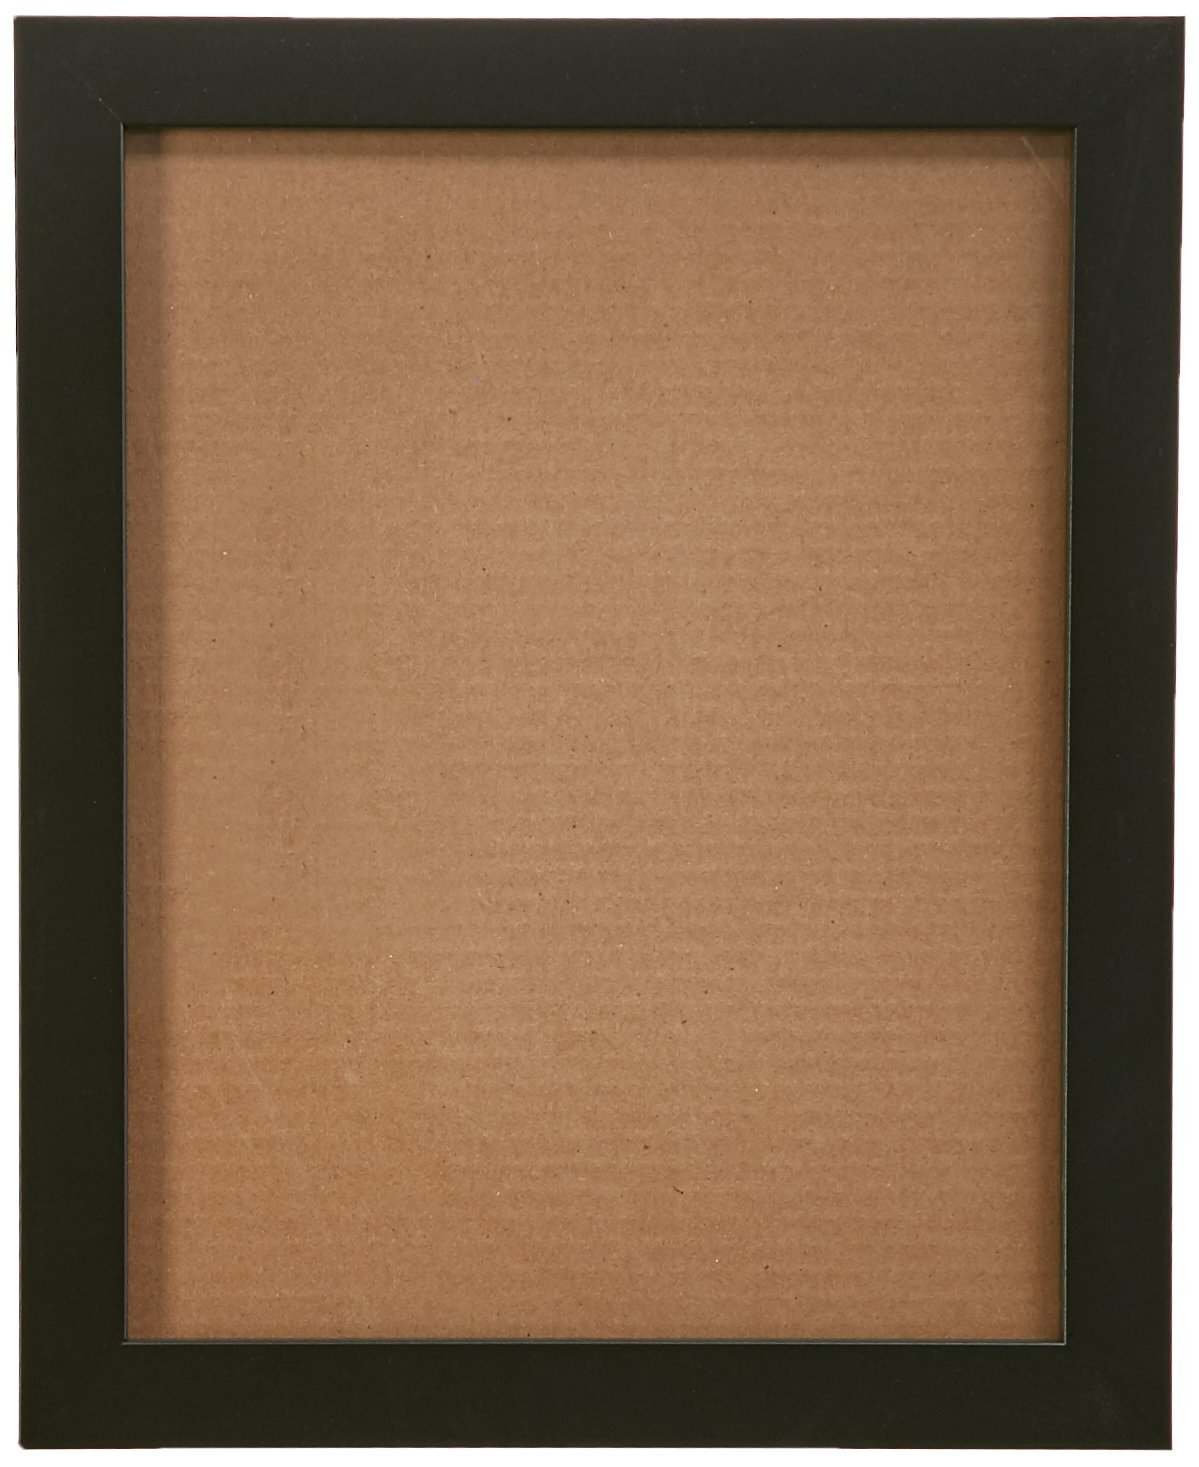 ArtToFrames 10x10 inch Black Picture Frame, WOMFRBW72079-10x10